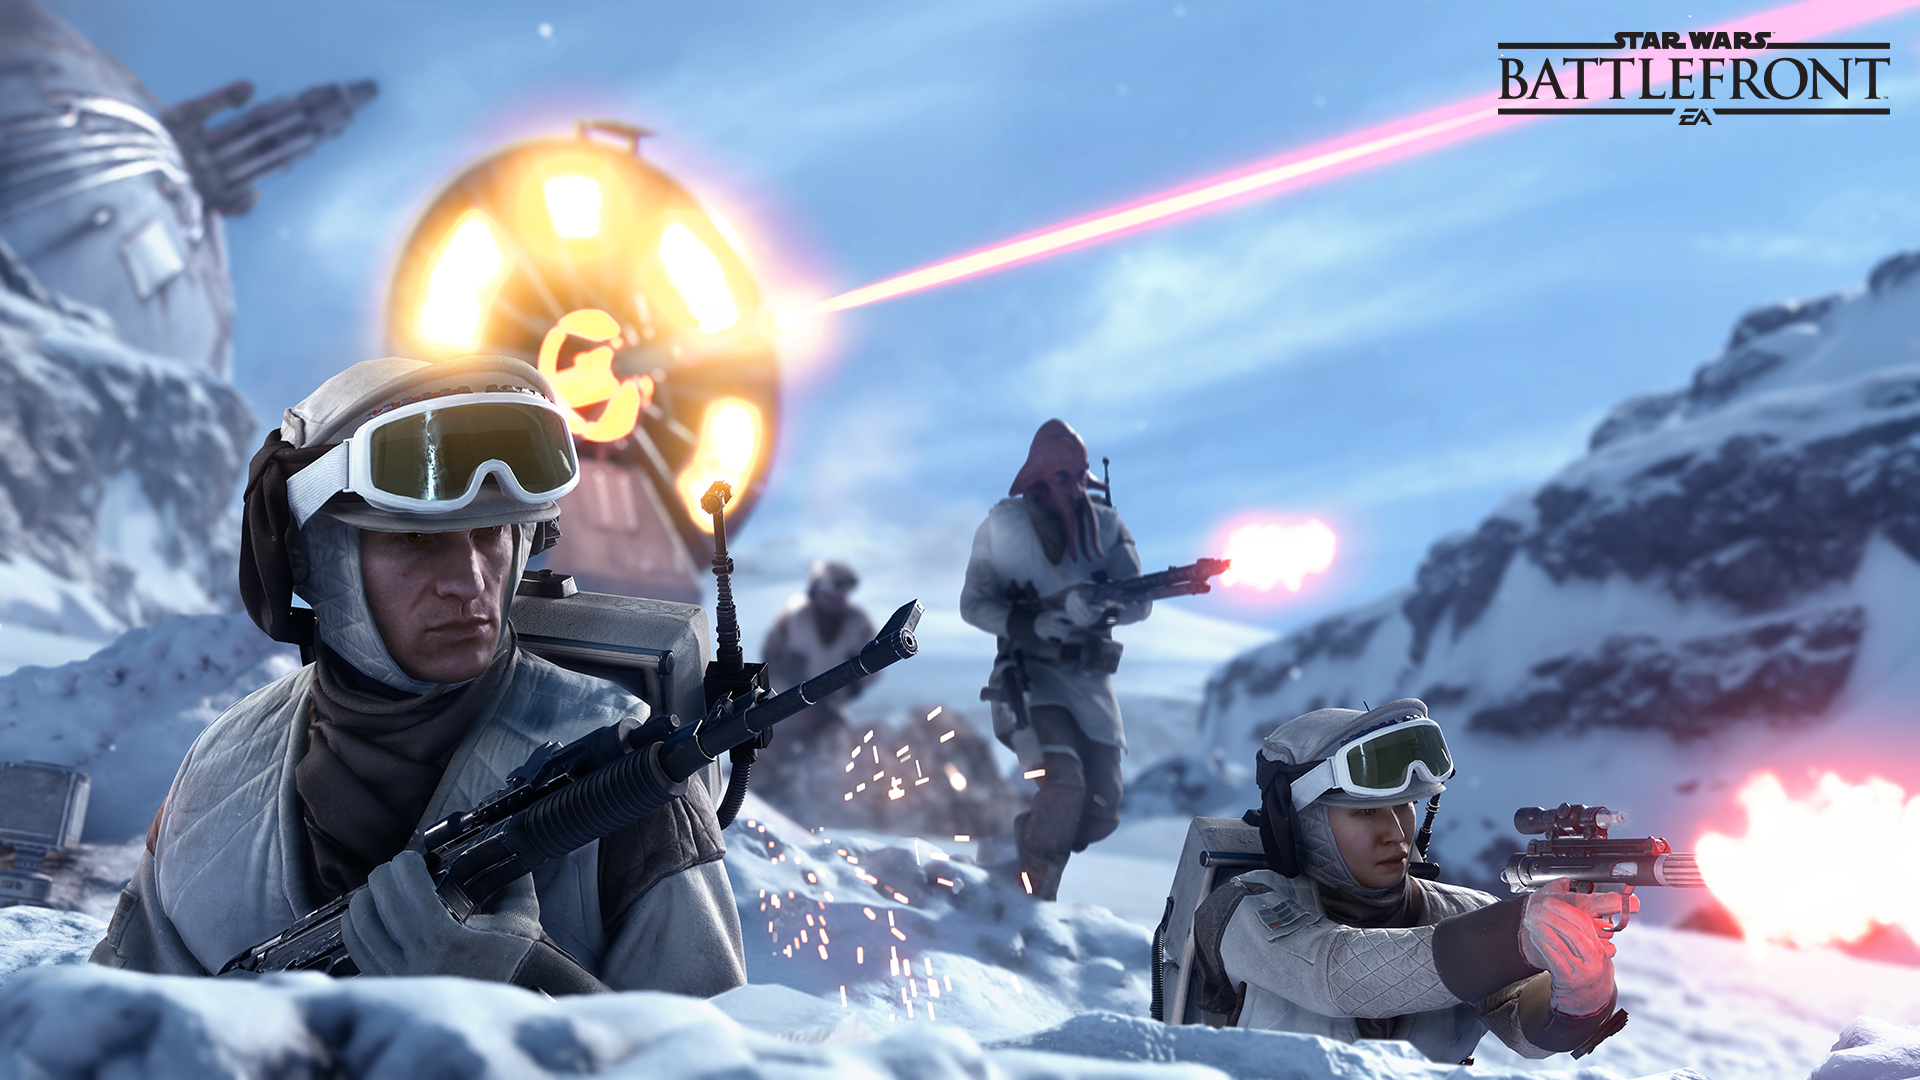 star wars battlefront wallpapers high resolution and quality download